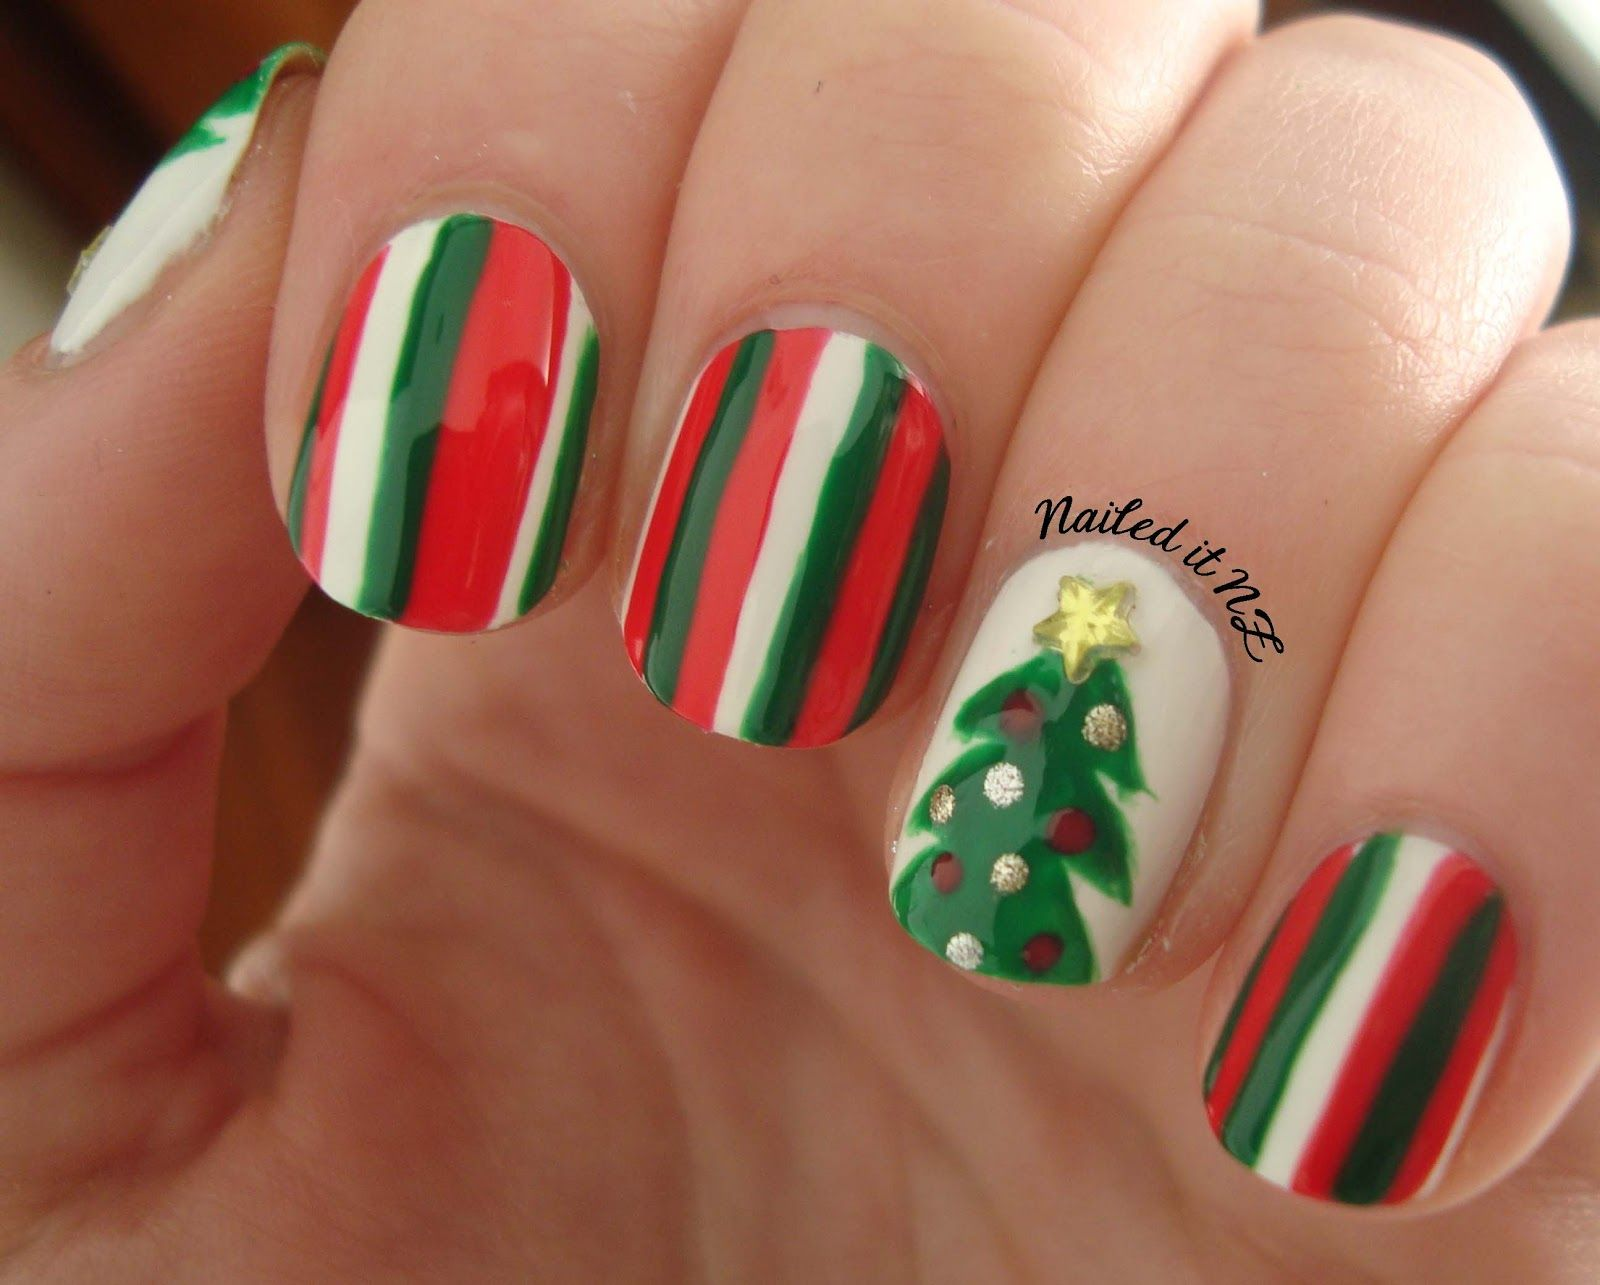 Christmas Nail Designs Nail Art For Short Nails 4 Christmas Tree Nails Mosaic Nails Christmas Nail Designs Christmas Tree Nails Cute Christmas Nails